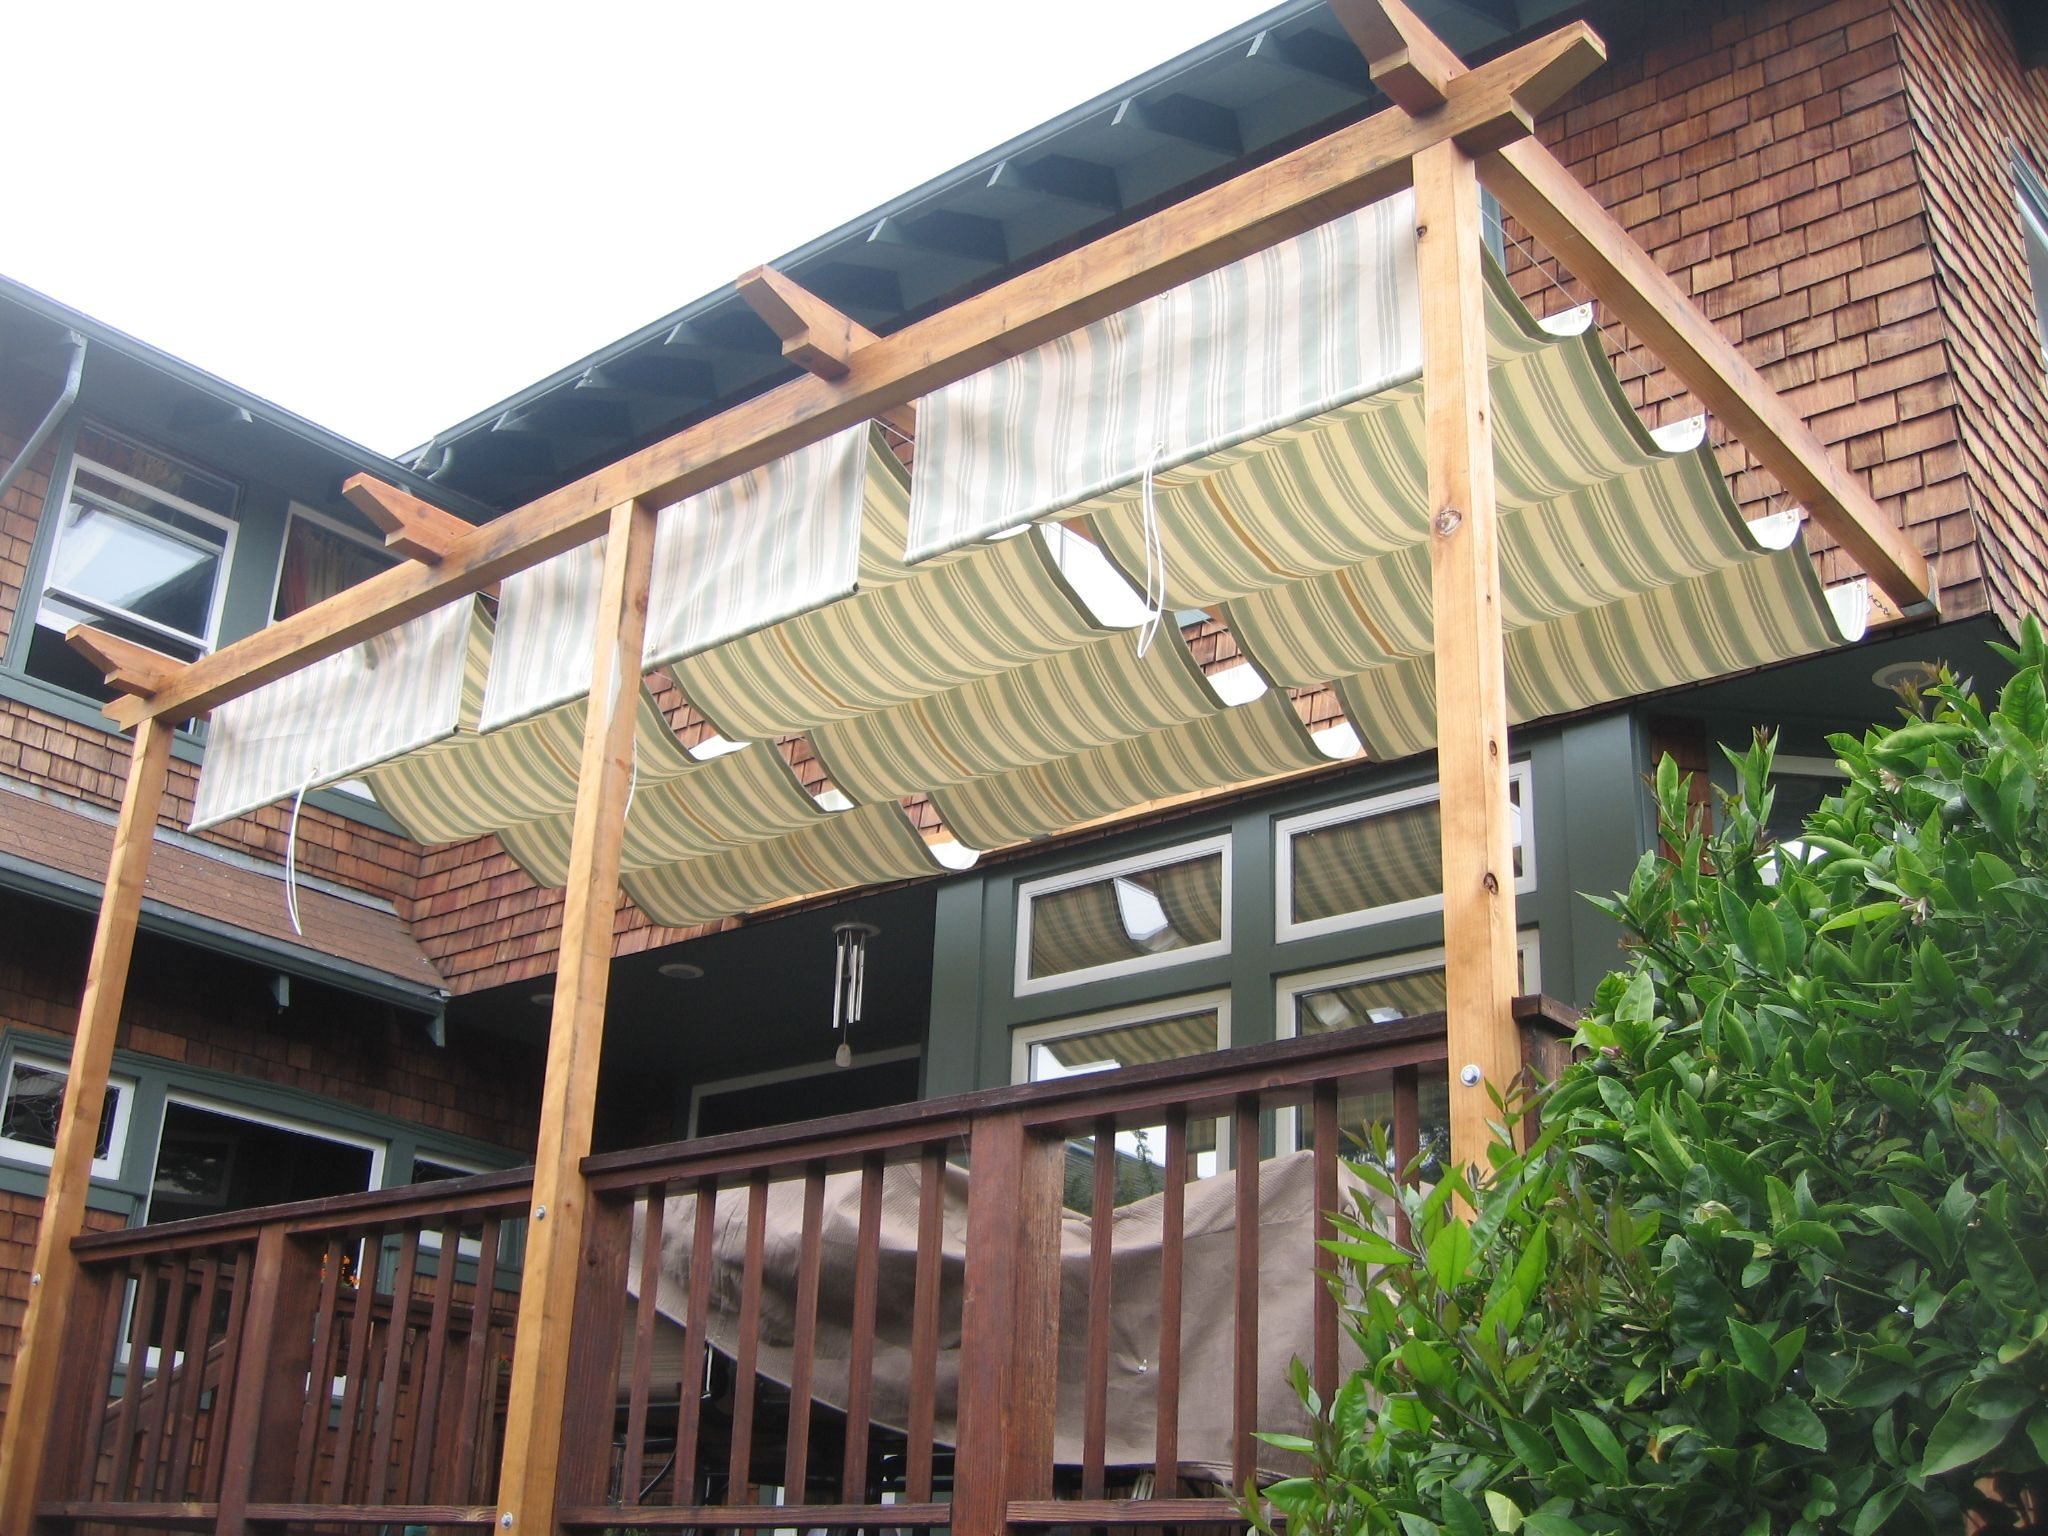 awning amp awnings deck patio systems for images retractable